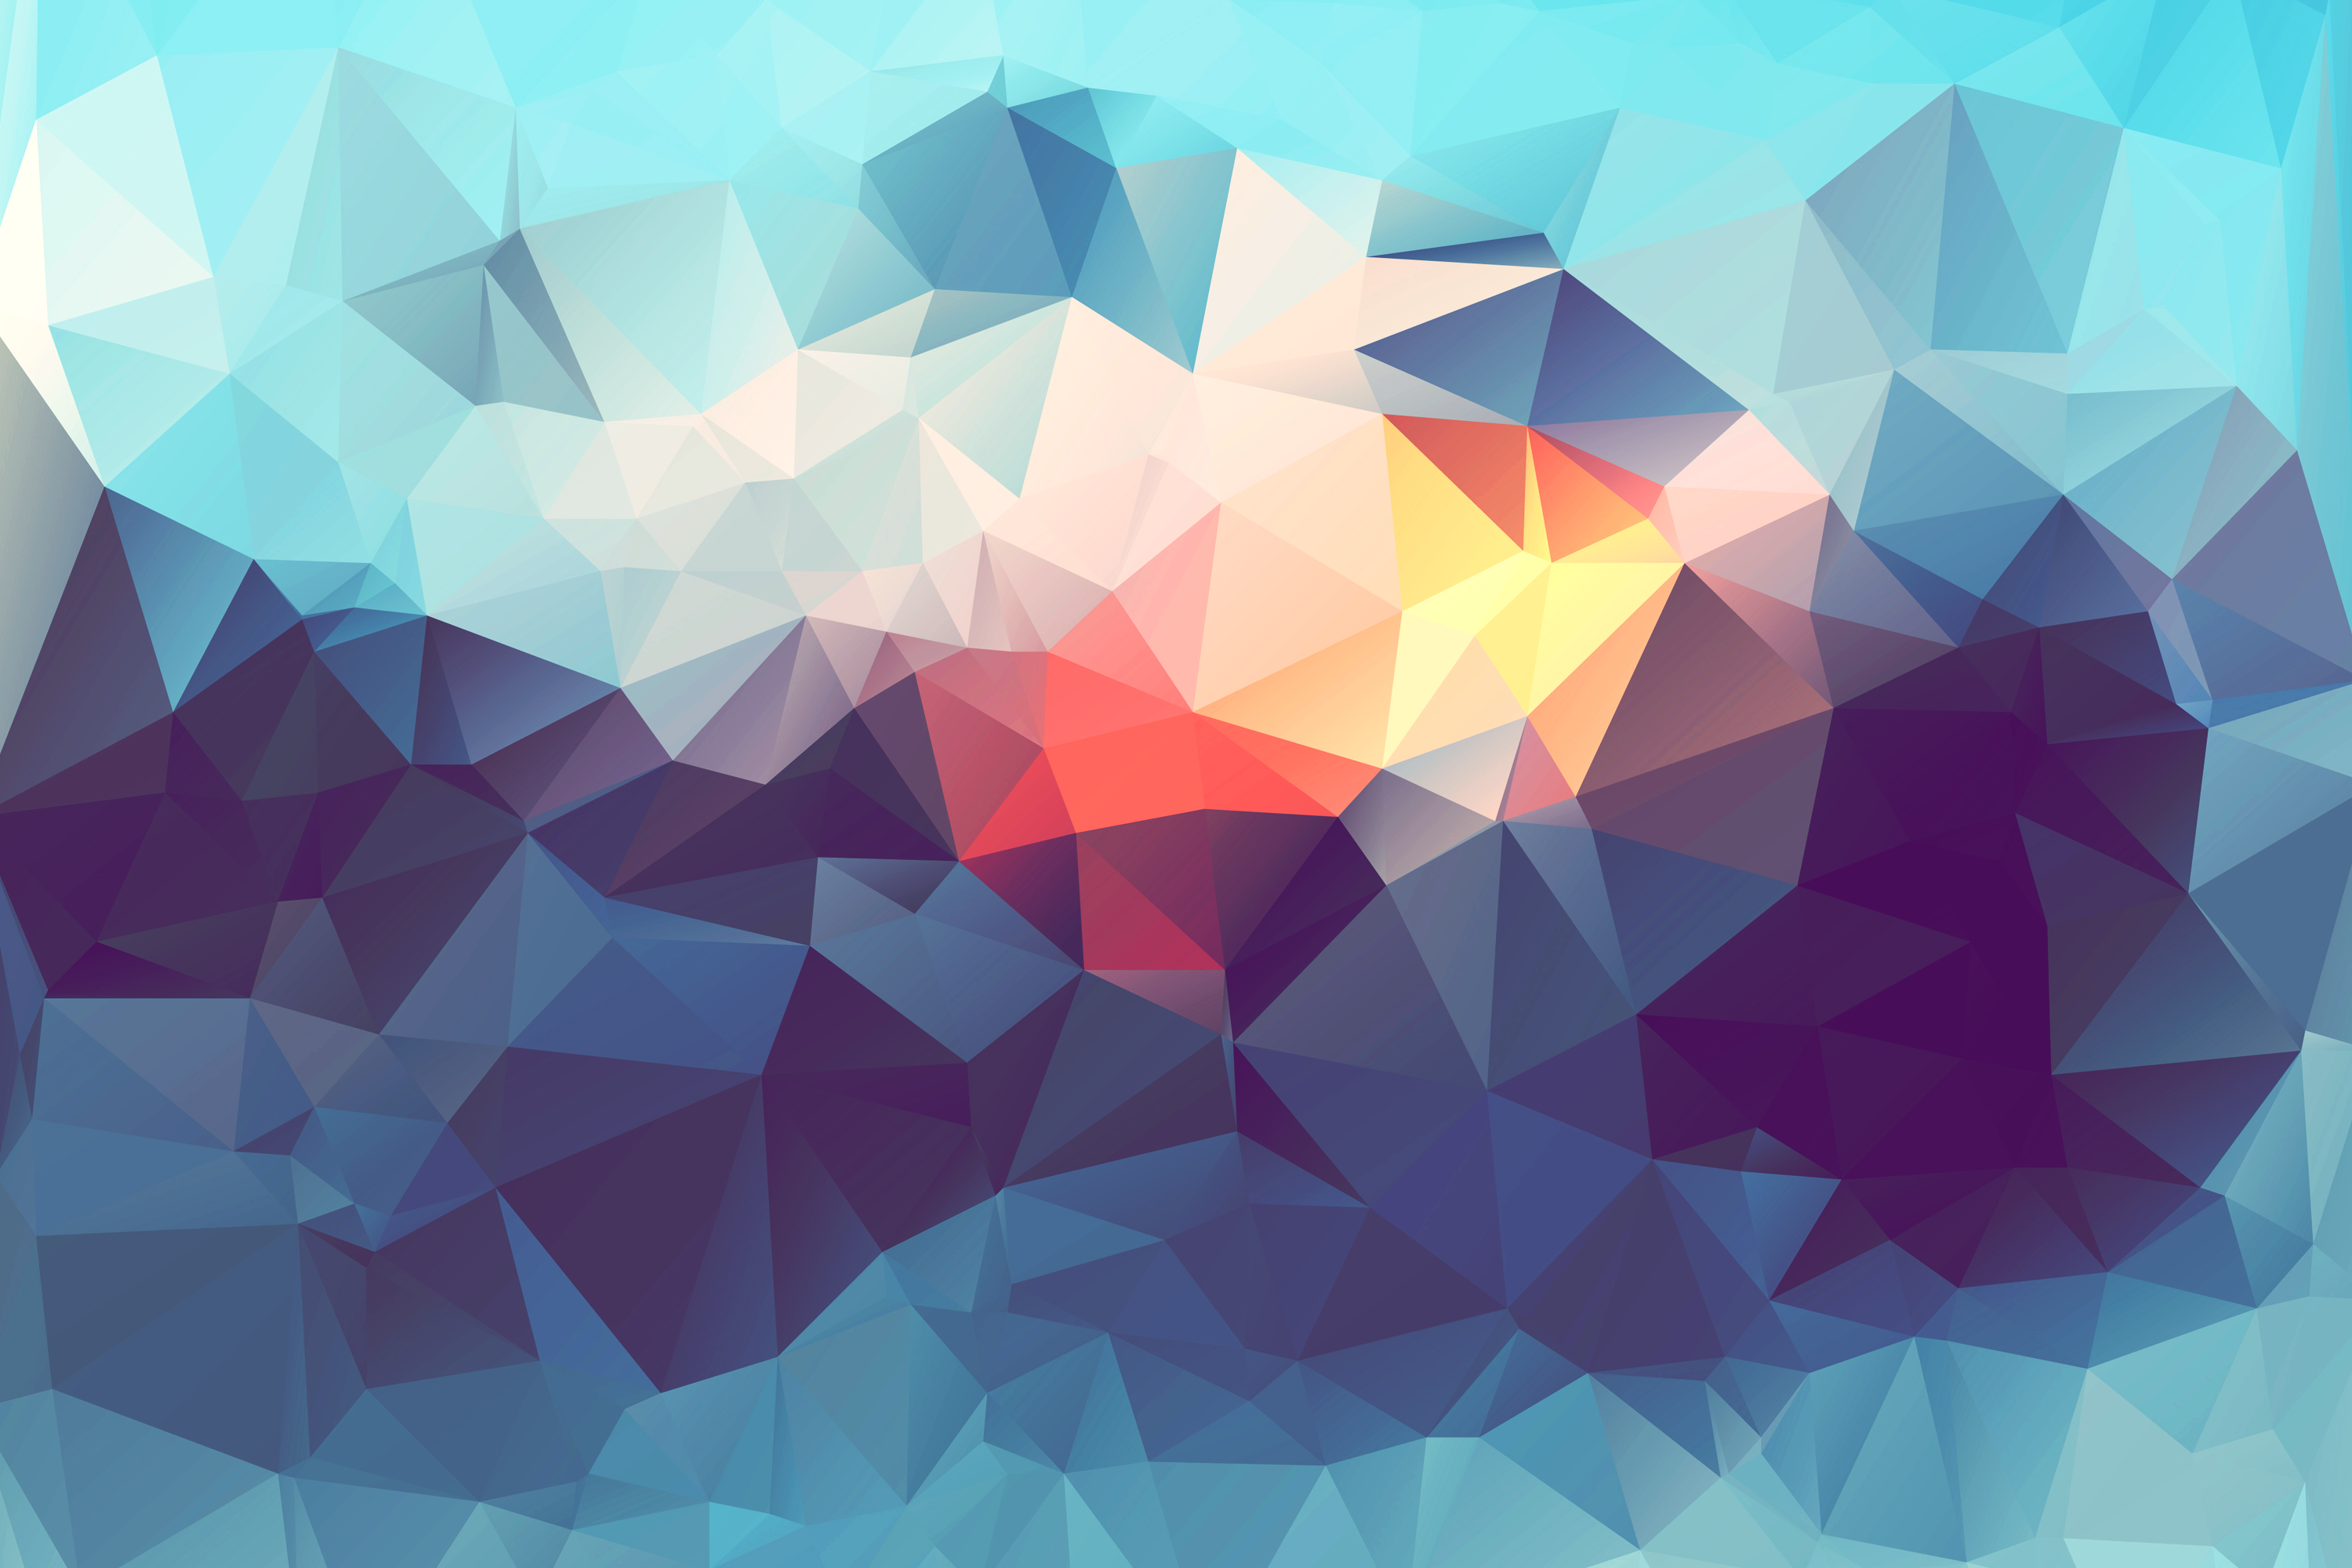 Abstract Low Poly Imgur Abstract Abstract Art Wallpaper Low Poly